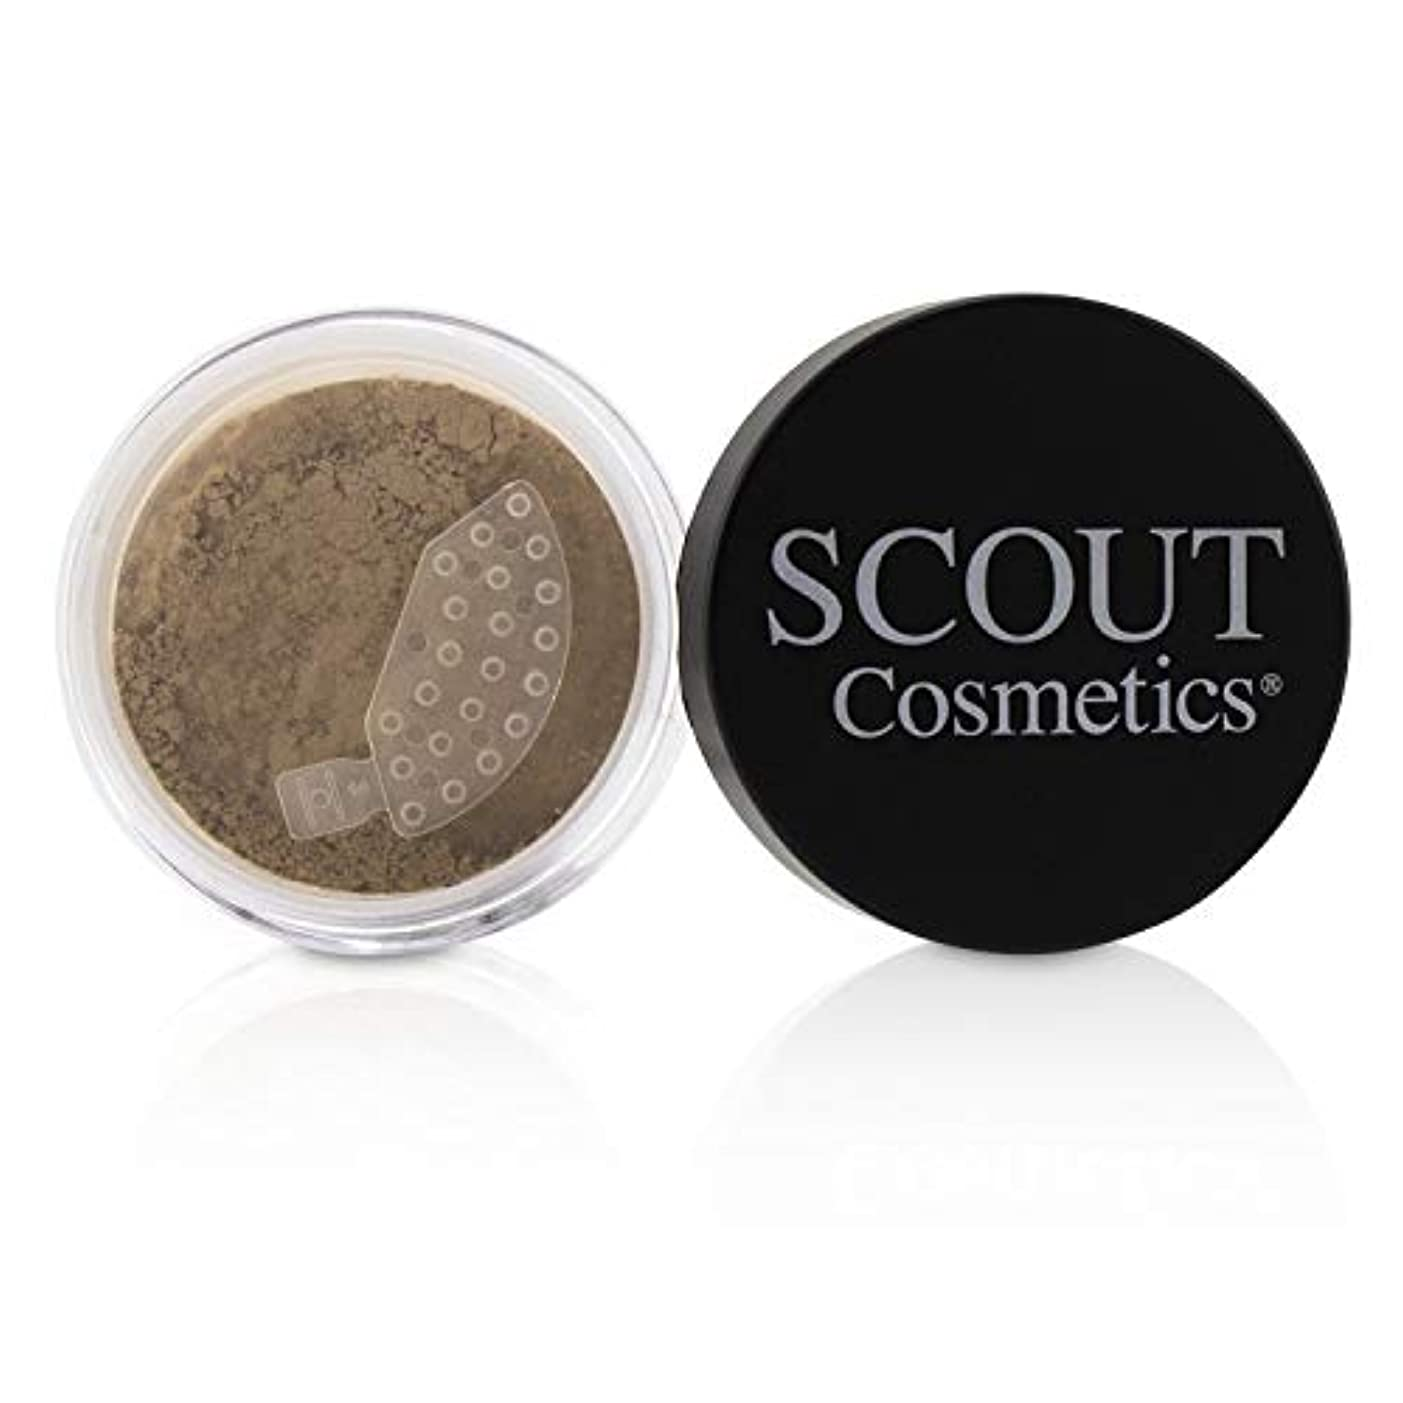 SCOUT Cosmetics Mineral Powder Foundation SPF 20 - # Sunset 8g/0.28oz並行輸入品